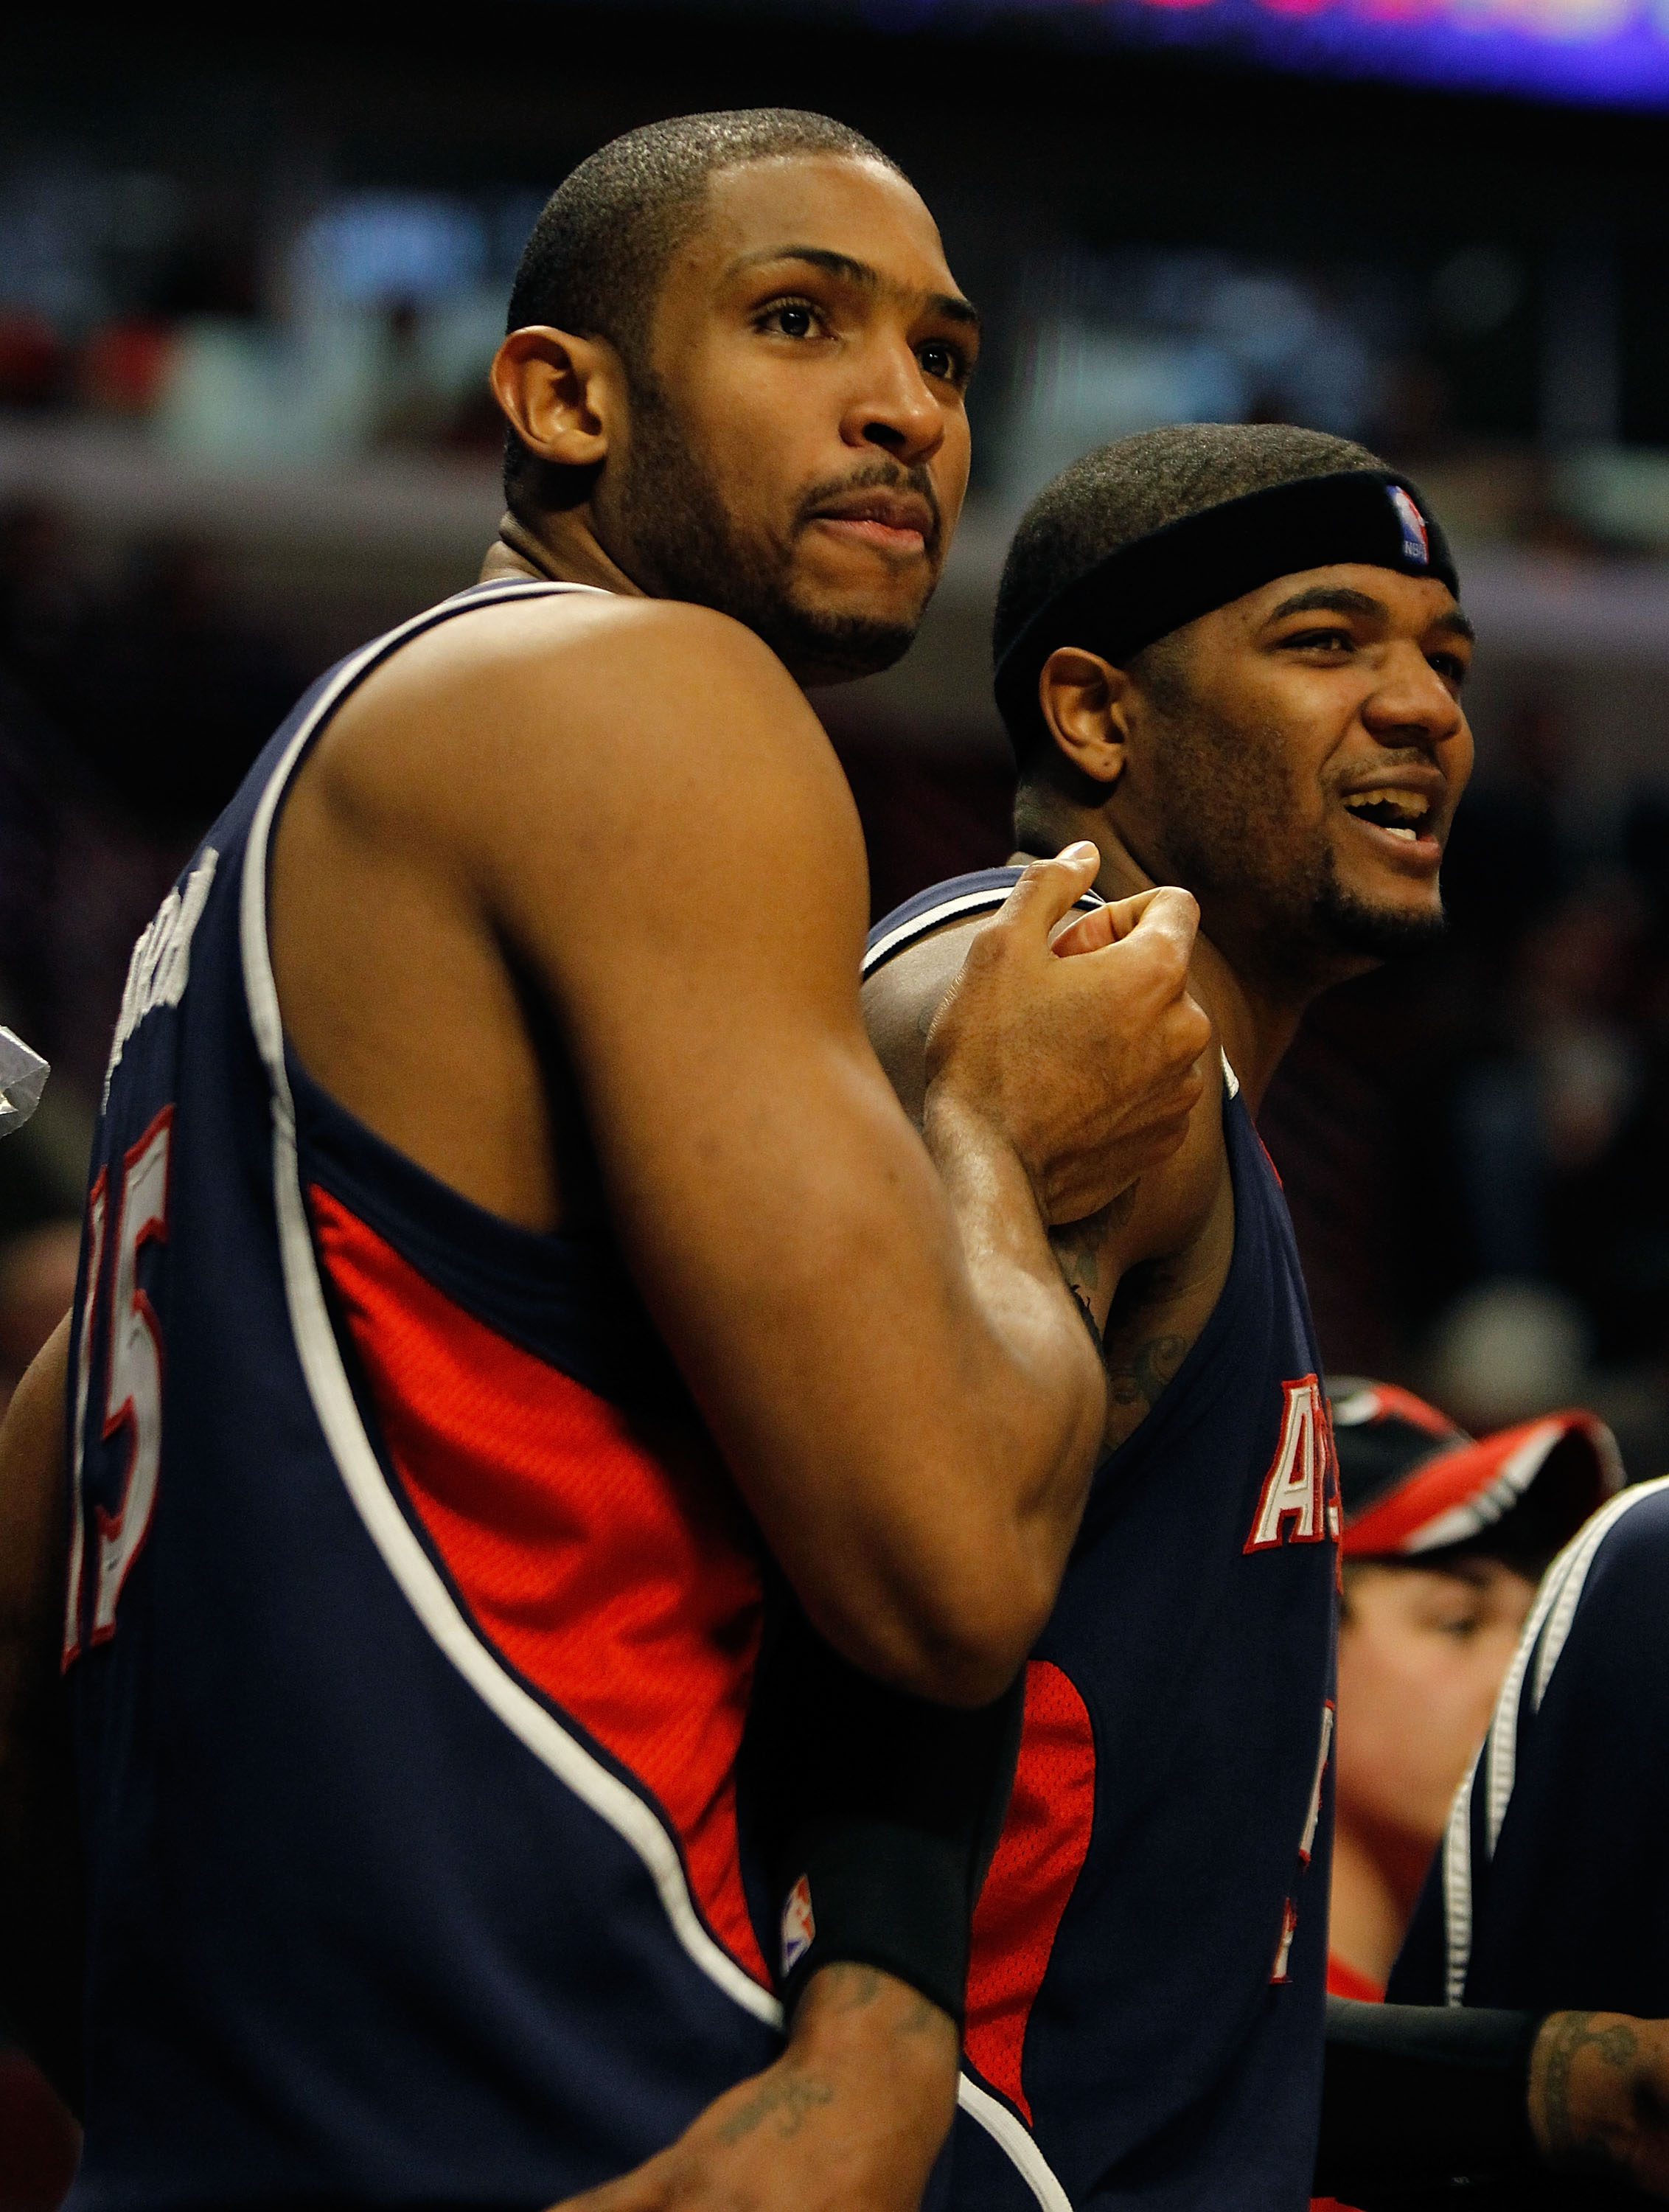 CHICAGO - MARCH 01: Al Horford #15 and Josh Smith #5 of the Atlanta Hawks react during the final minute of a win over the Chicago Bulls at the United Center on March 1, 2010 in Chicago, Illinois. The Hawks defeated the Bulls 116-92. NOTE TO USER: User exp